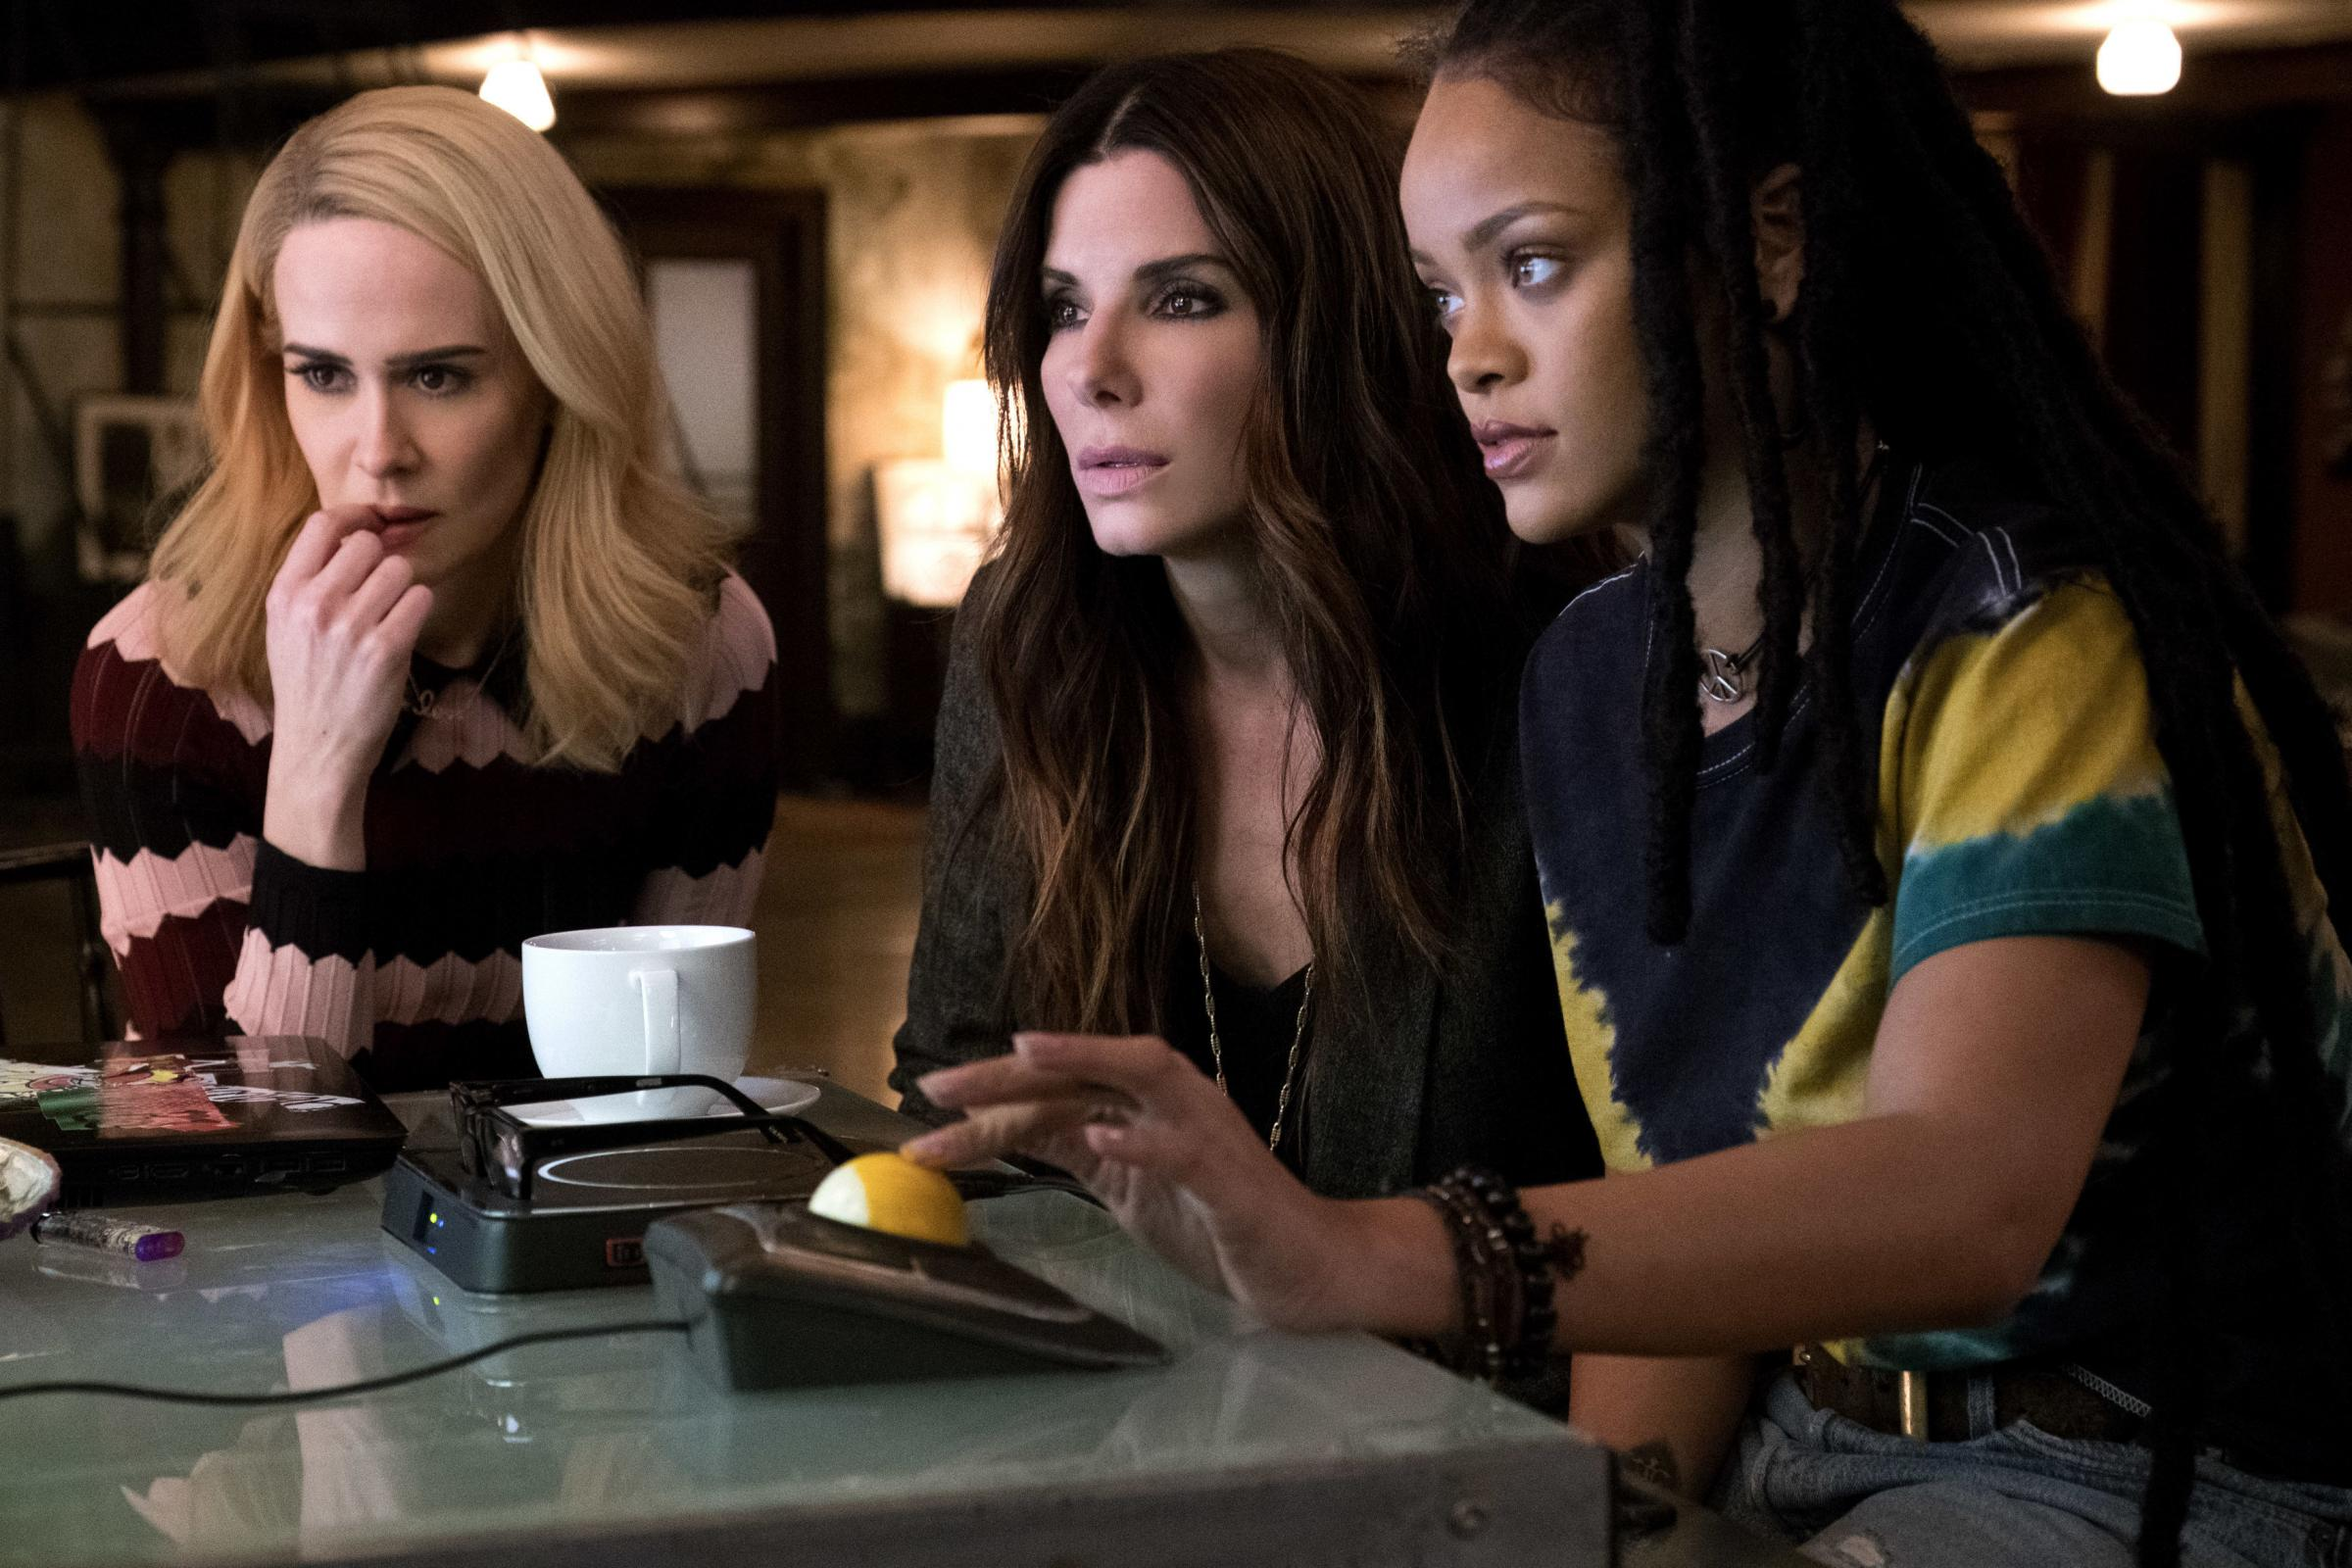 Undated film still handout from Ocean's 8. Pictured: Sarah Paulson as Tammy, Sandra Bullock as Debbie Ocean and Rihanna as Nine Ball. See PA Feature SHOWBIZ Film Reviews. Picture credit should read: PA Photo/Warner Bros. Entertainment